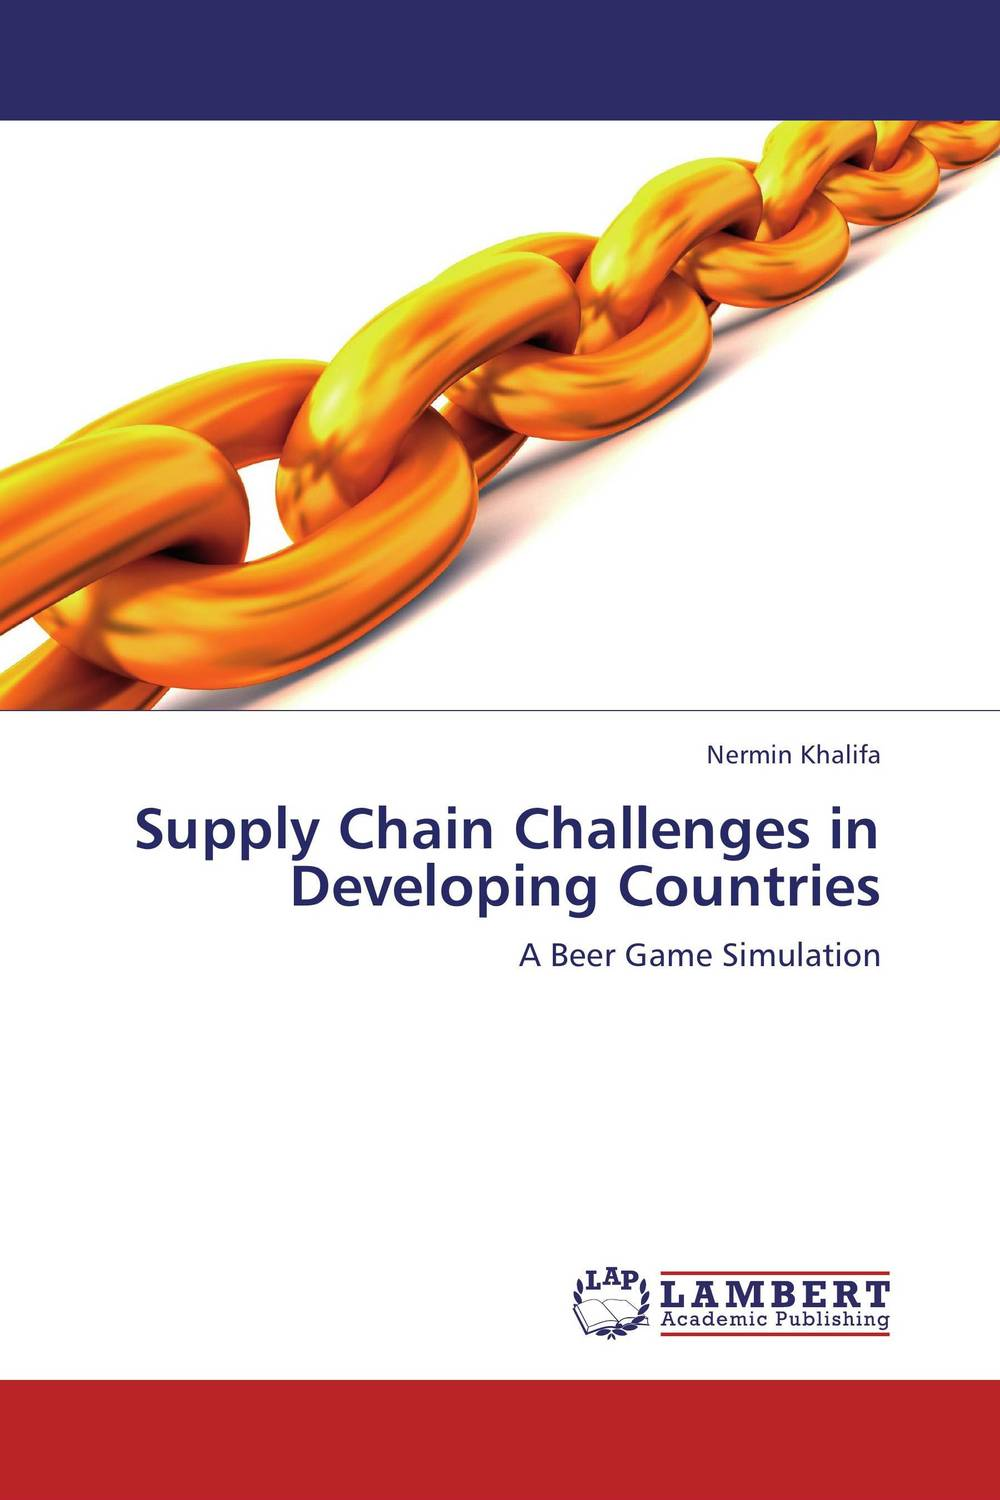 Supply Chain Challenges in Developing Countries